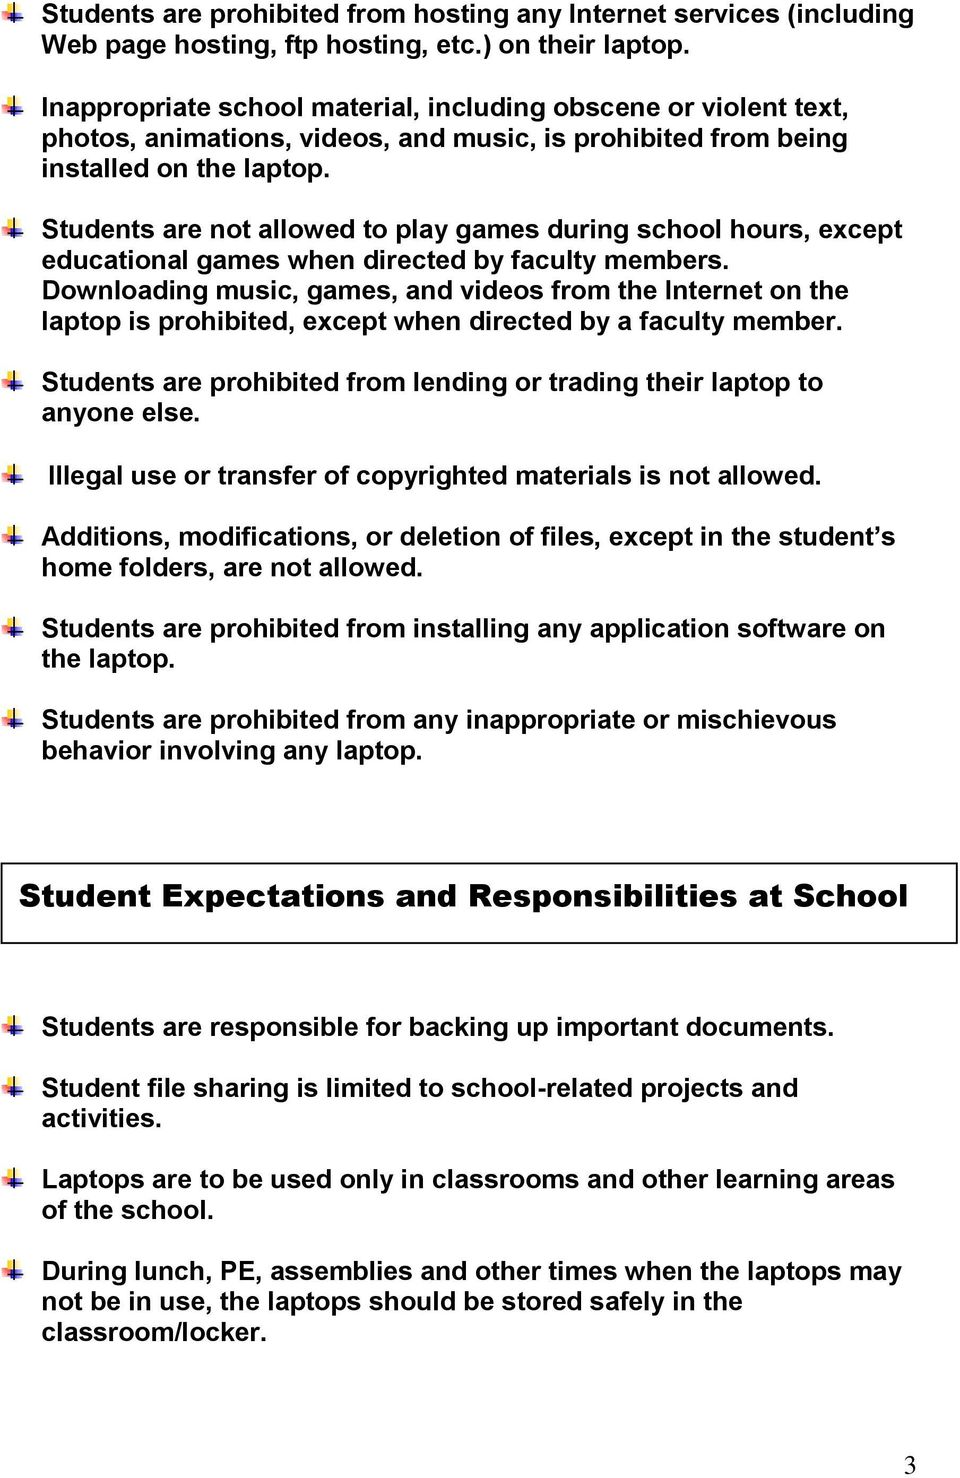 Students are not allowed to play games during school hours, except educational games when directed by faculty members.